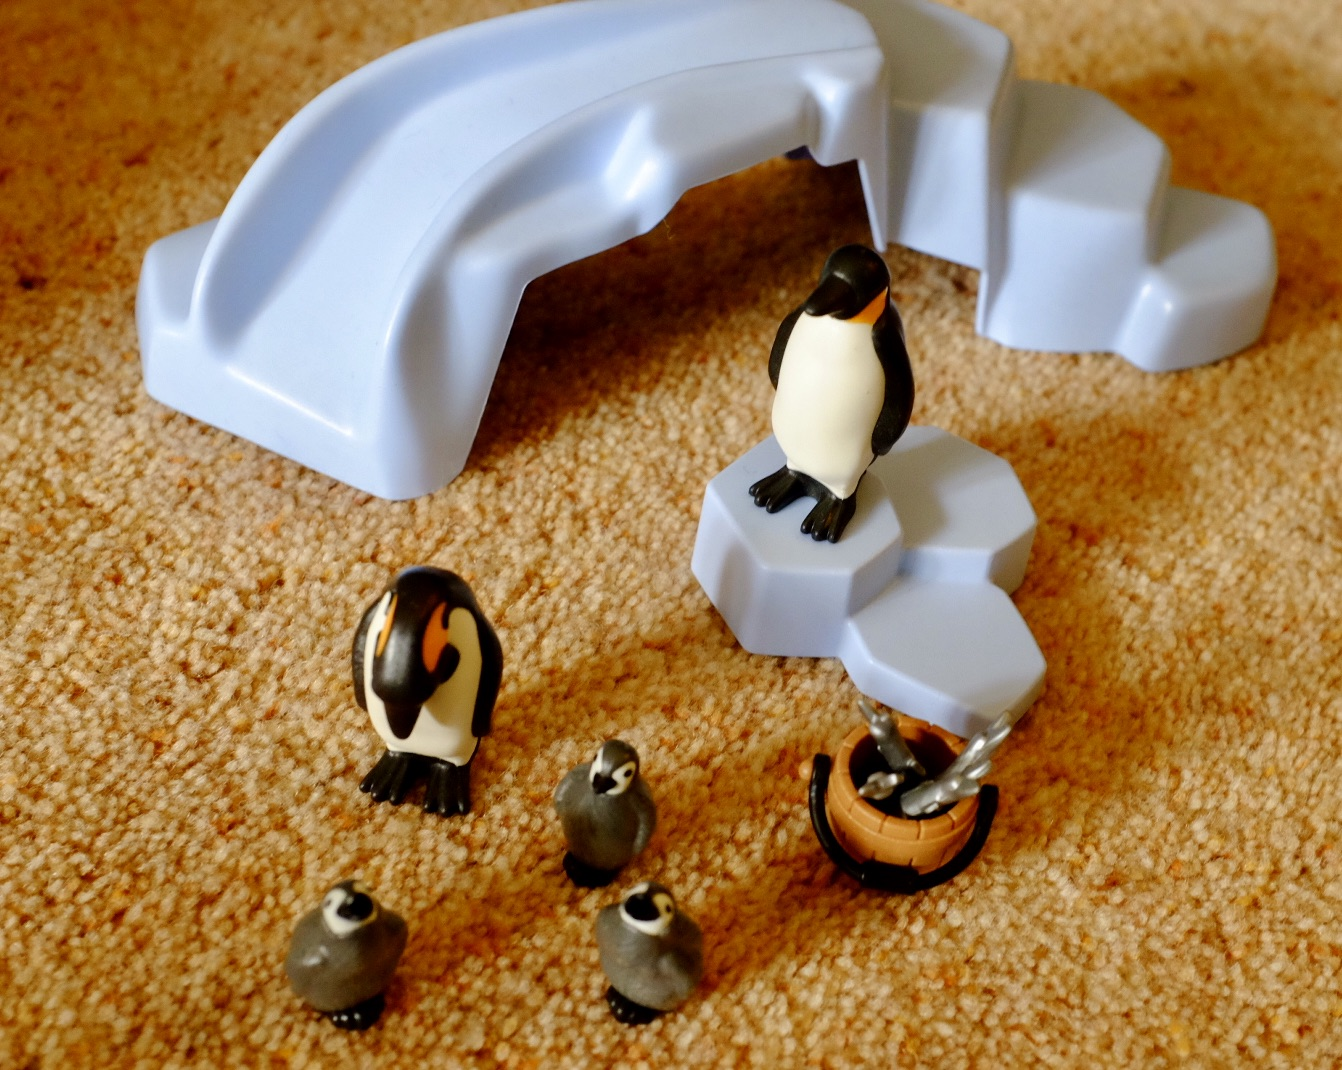 penguins in the Playmobil Family Fun Zoo